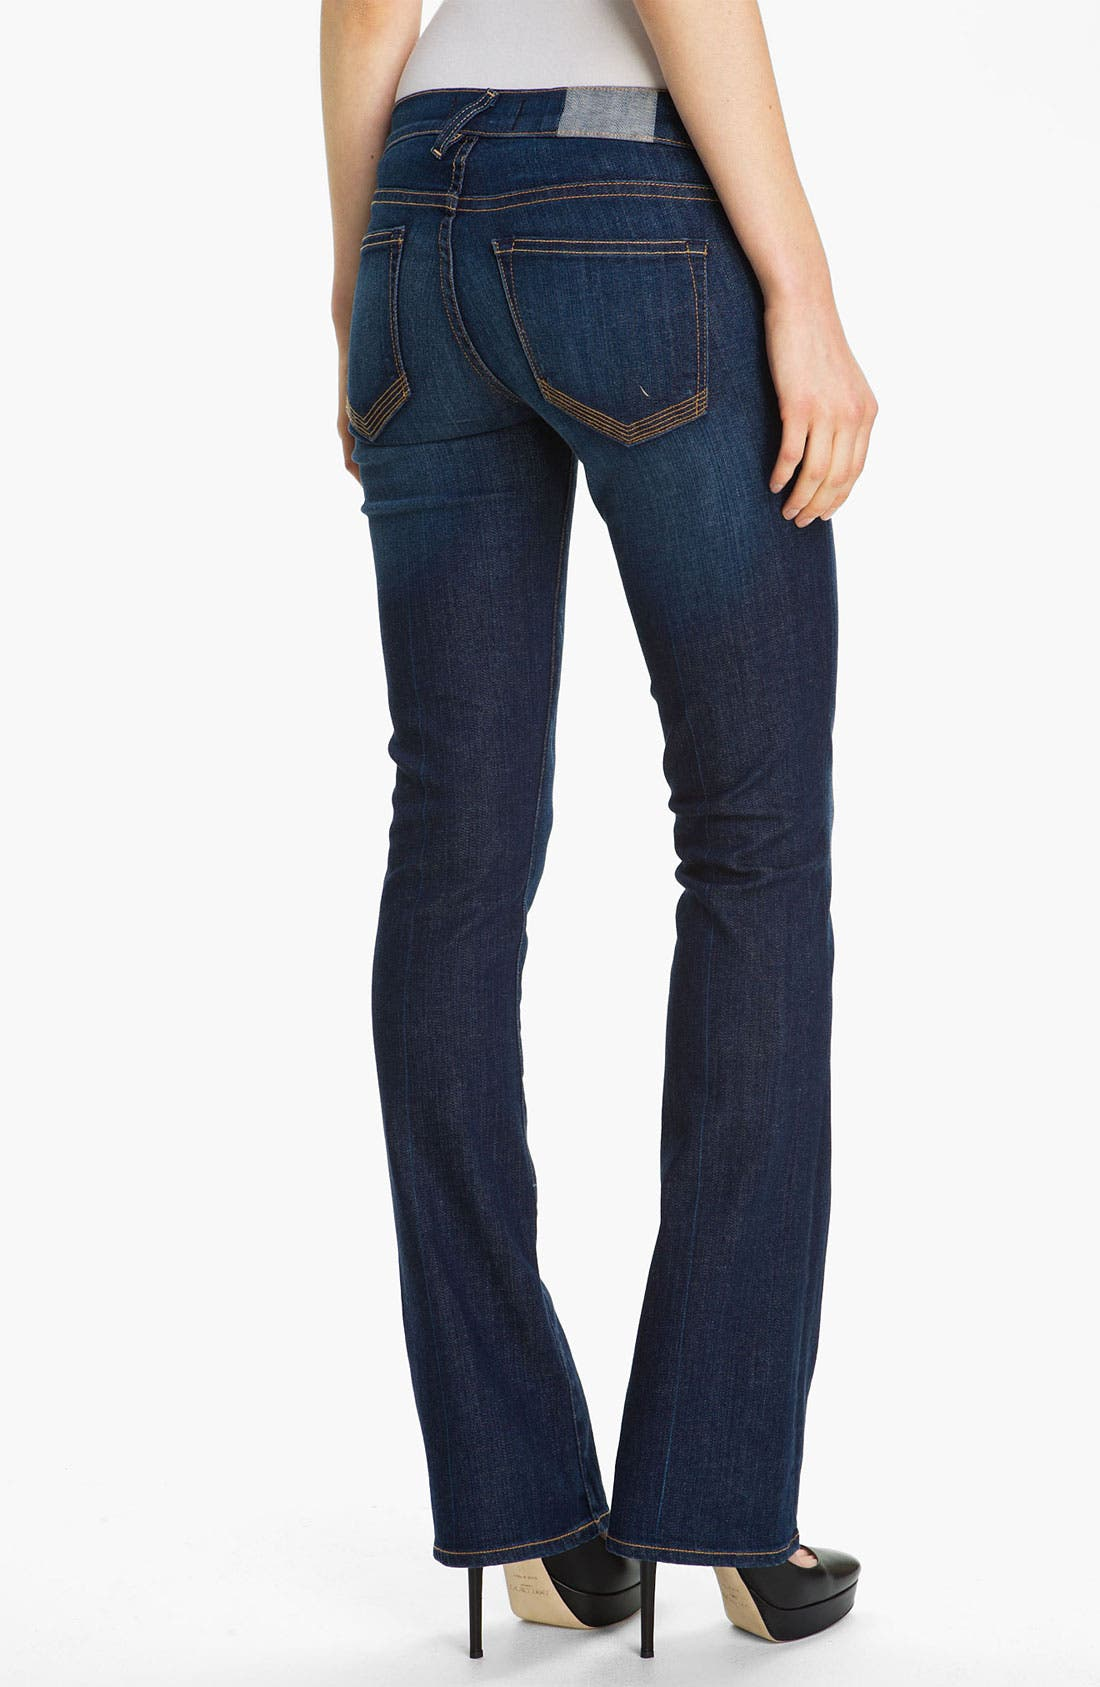 Alternate Image 1 Selected - TEXTILE Elizabeth and James 'Tyler' Bootcut Stretch Jeans